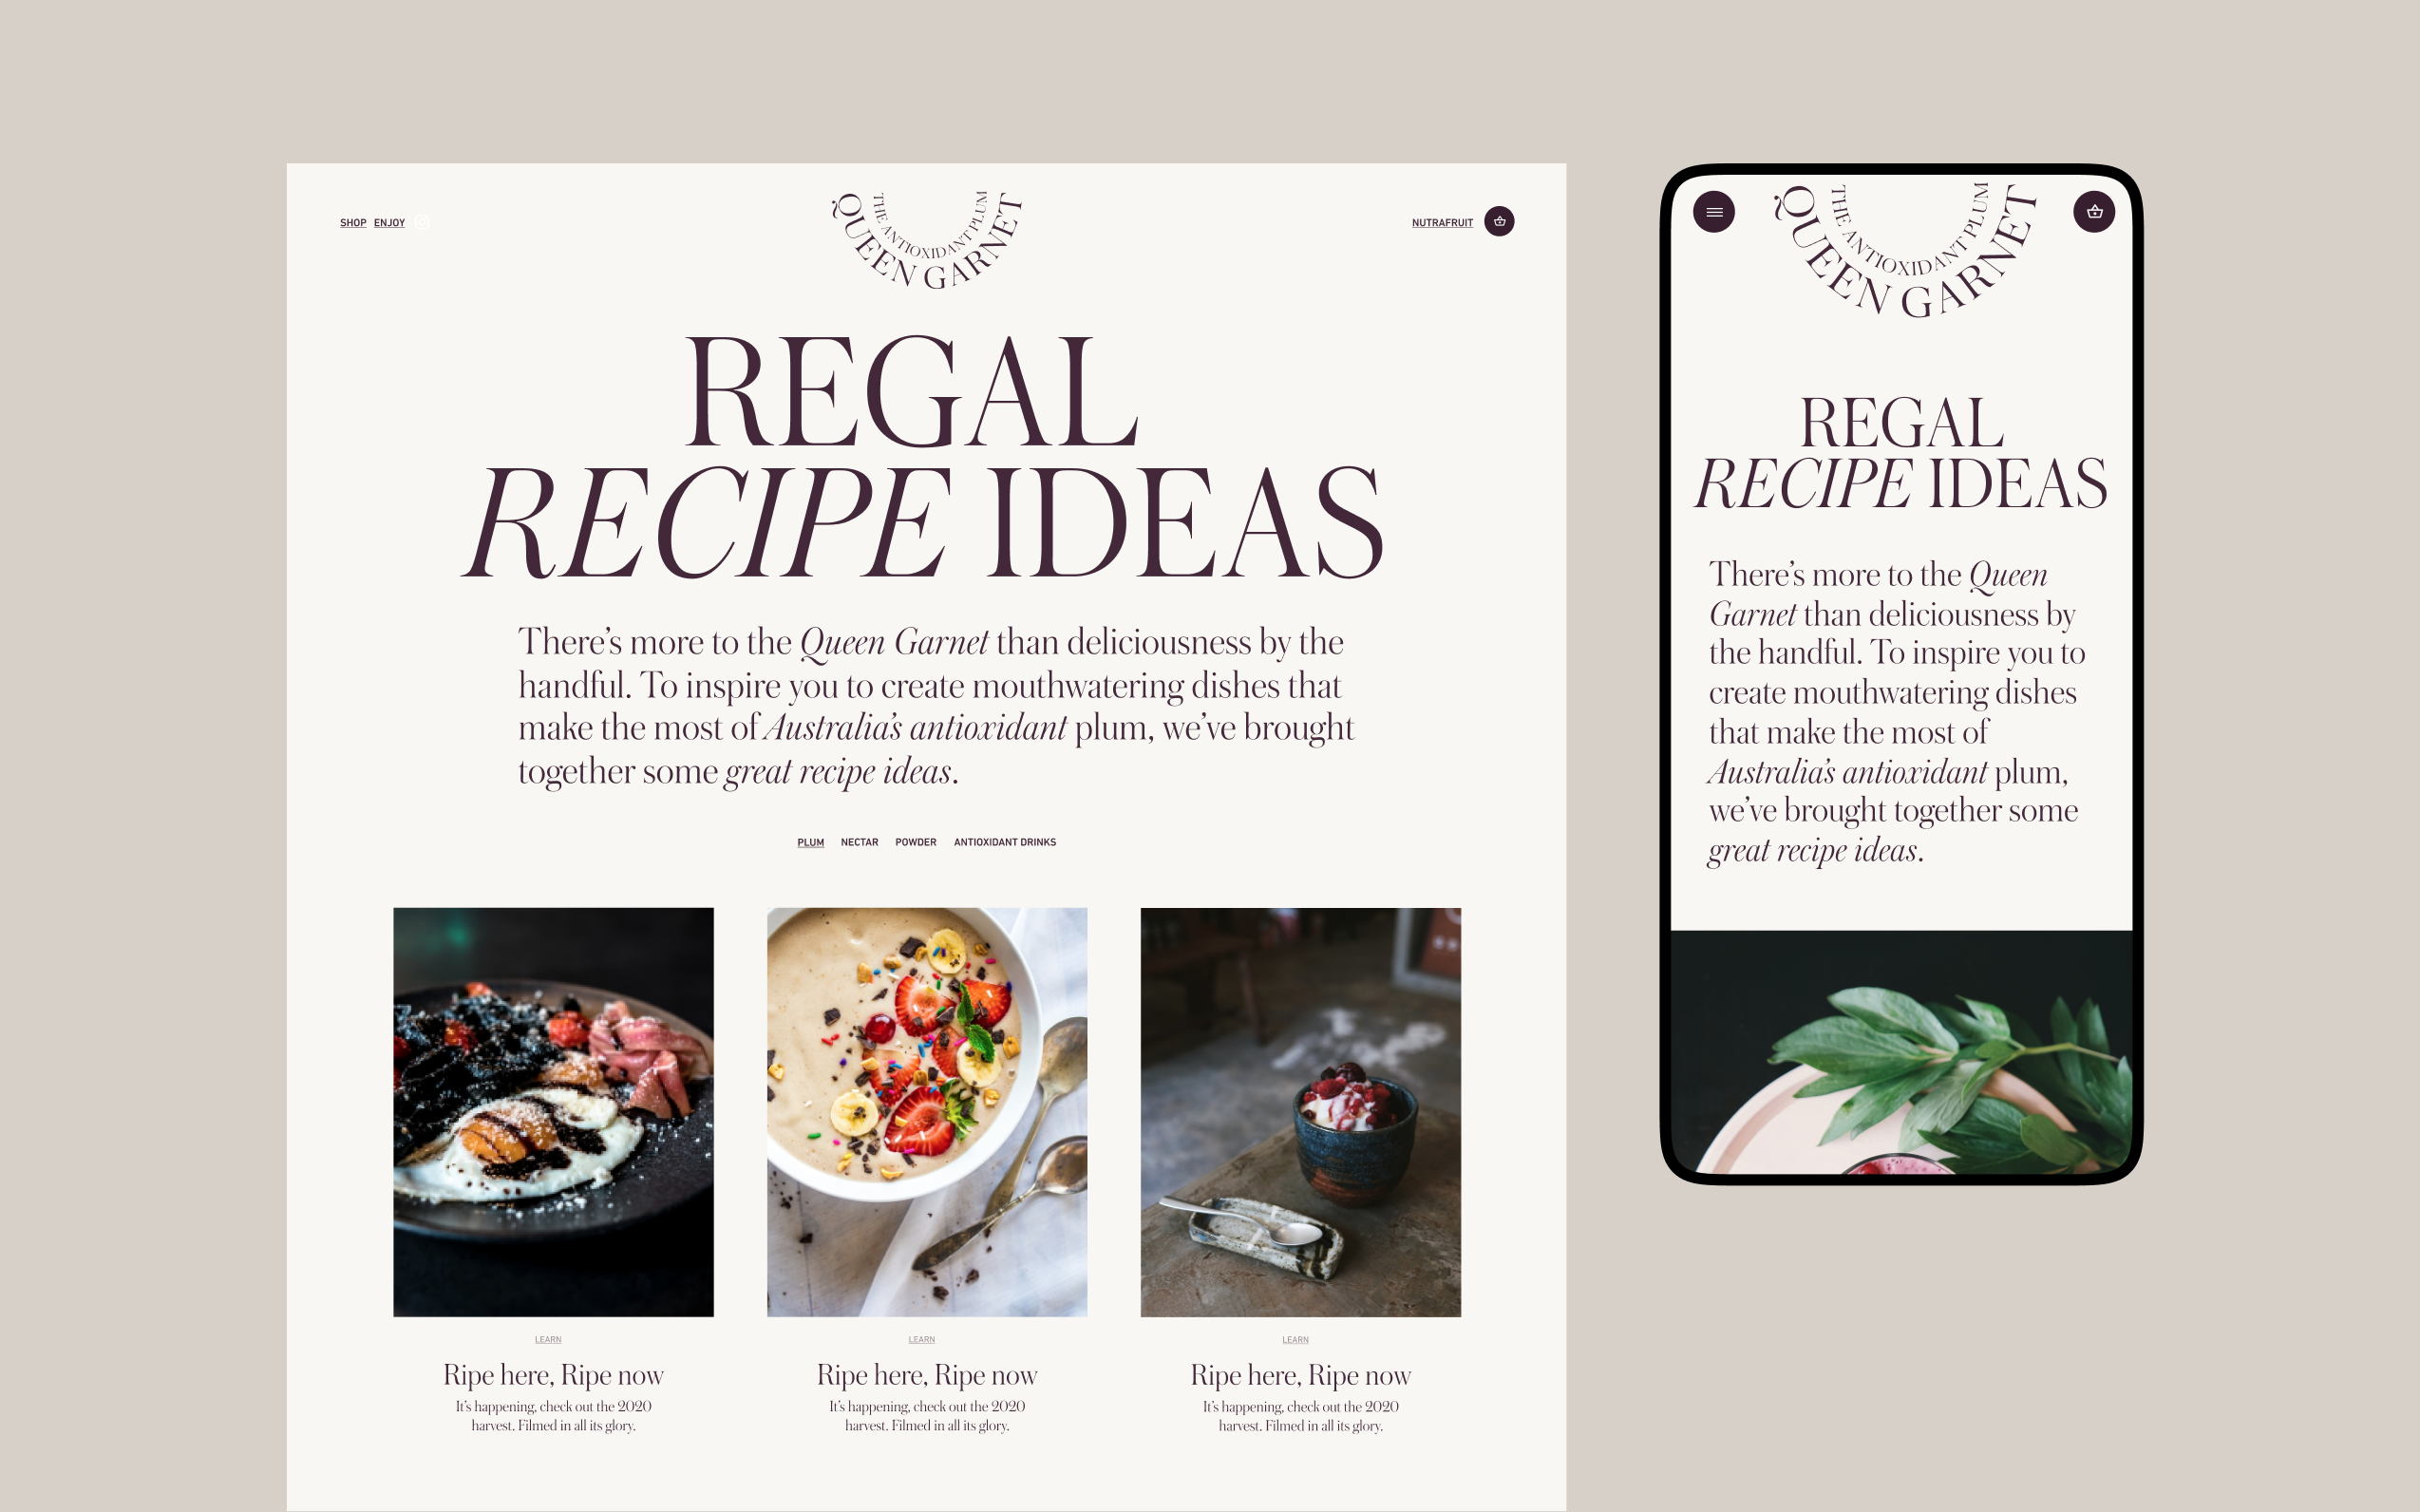 Desktop and mobile screen of the Queen Garnet website recipe page